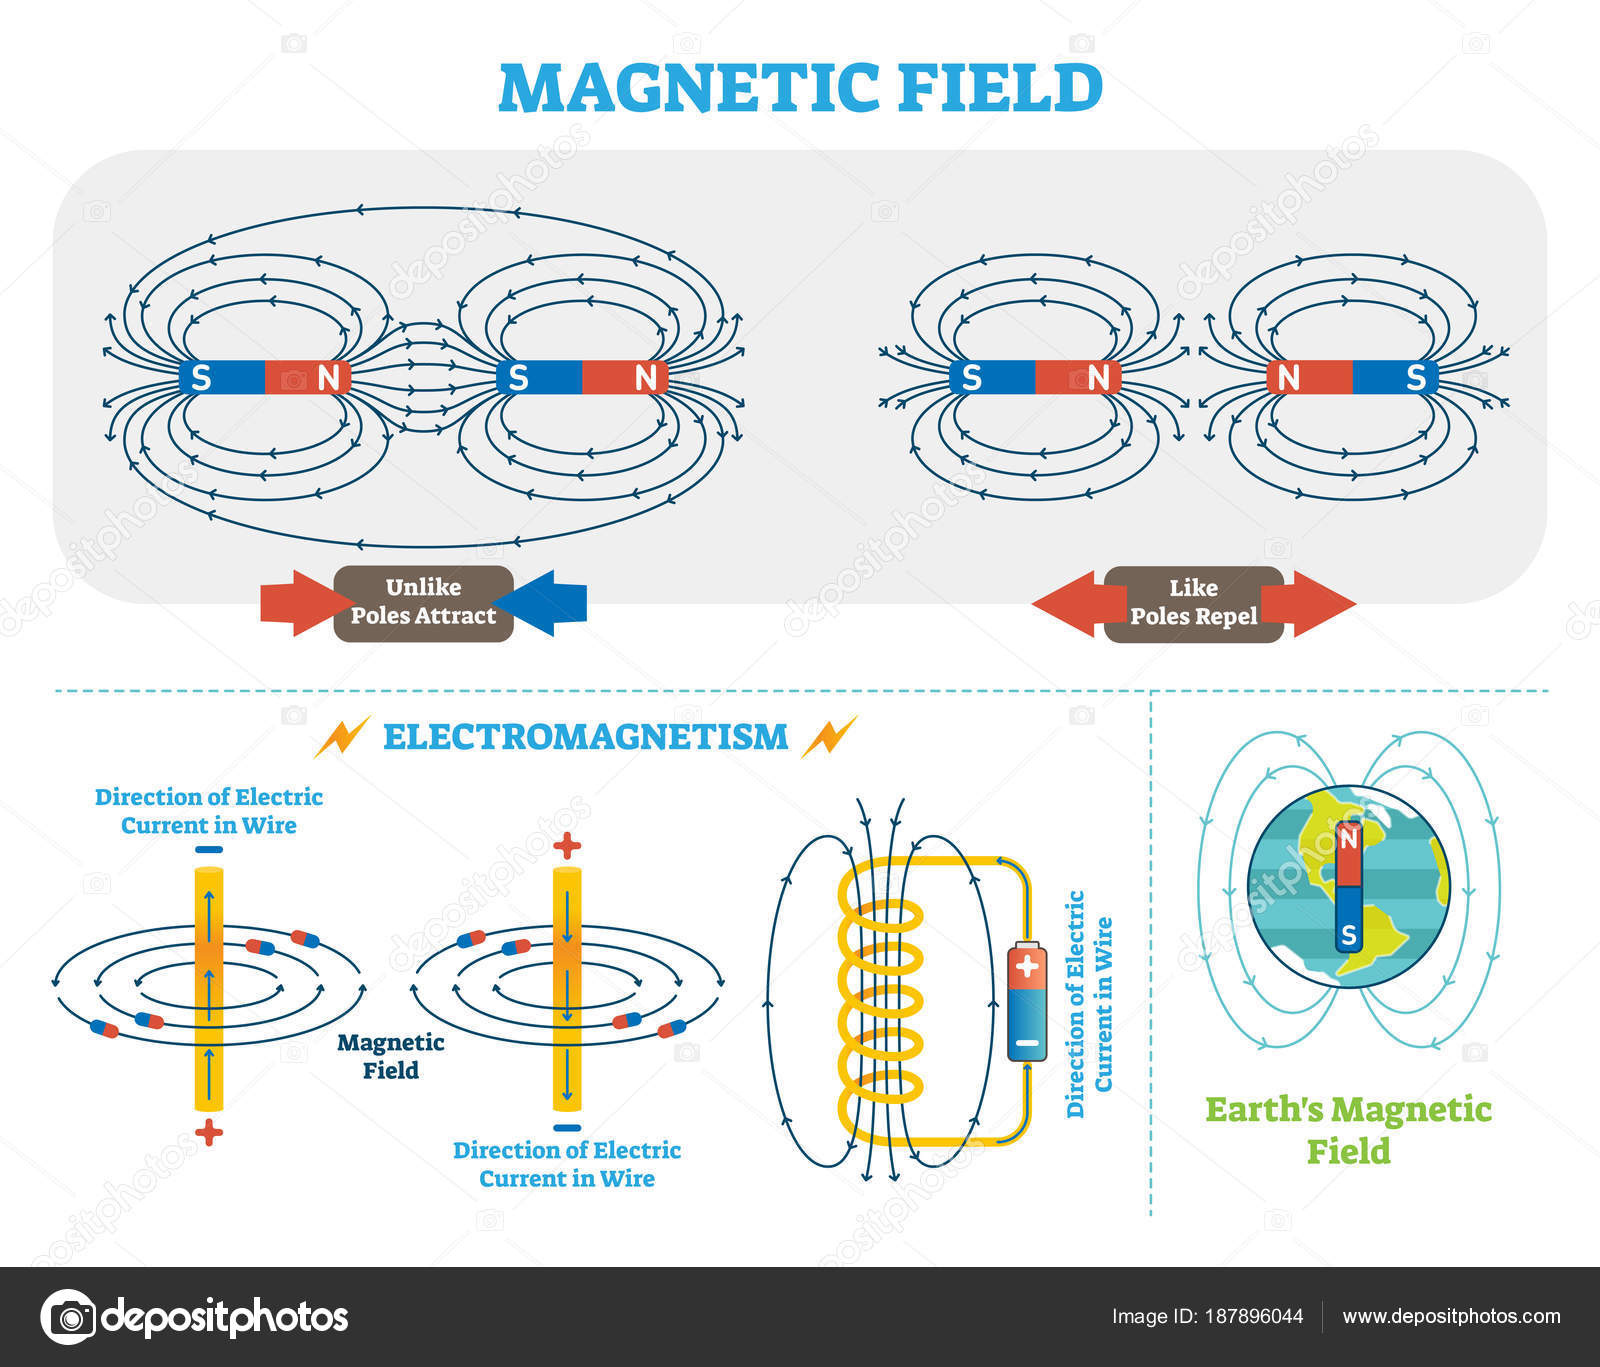 Scientific magnetic field and electromagnetism vector illustration scientific magnetic field and electromagnetism vector illustration scheme electric current and magnetic poles scheme earth magnetic field diagram ccuart Images